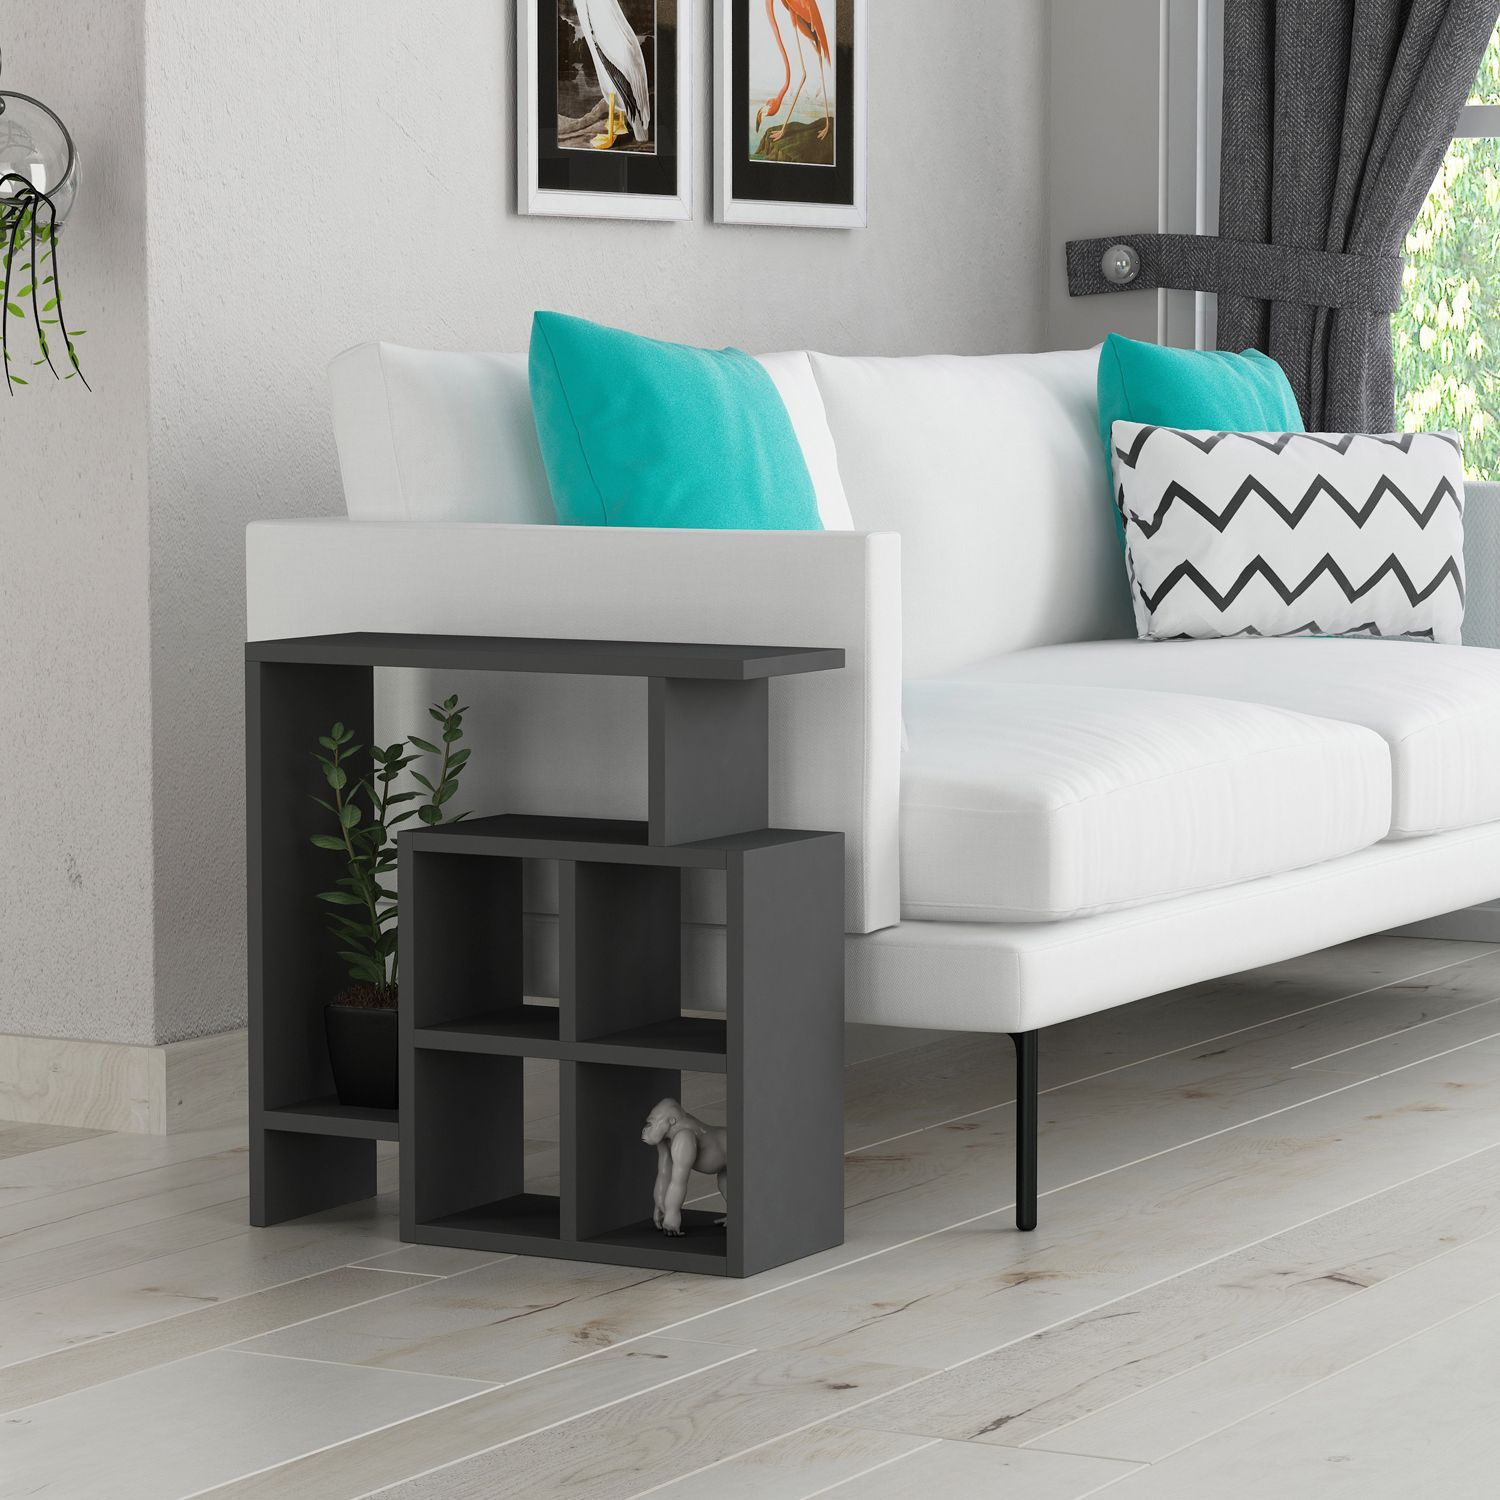 Costa anthracite side table